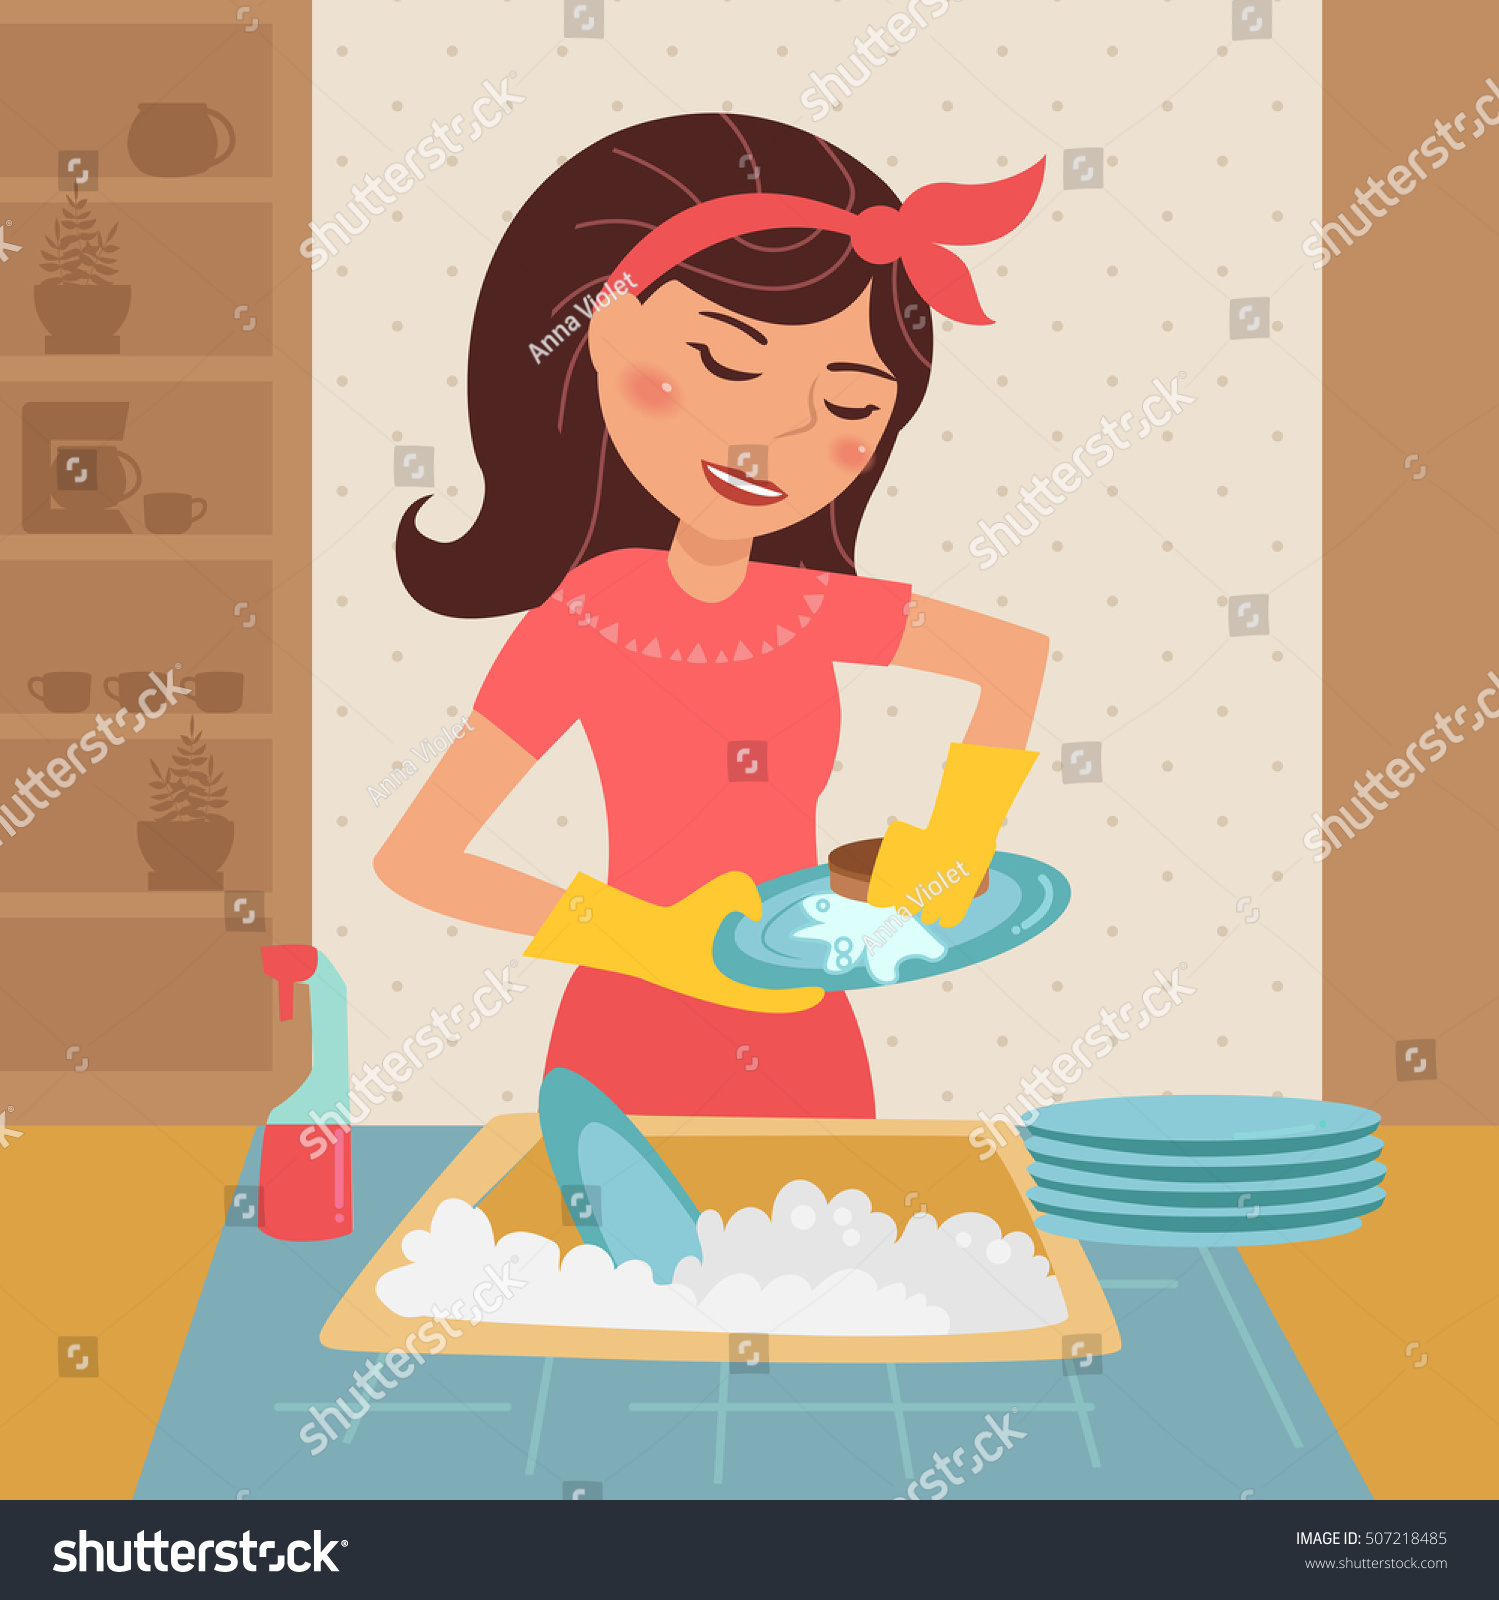 Kitchen Clean Up Cartoon: Woman Washing Dishes Vector Illustration Cartoon Vectores